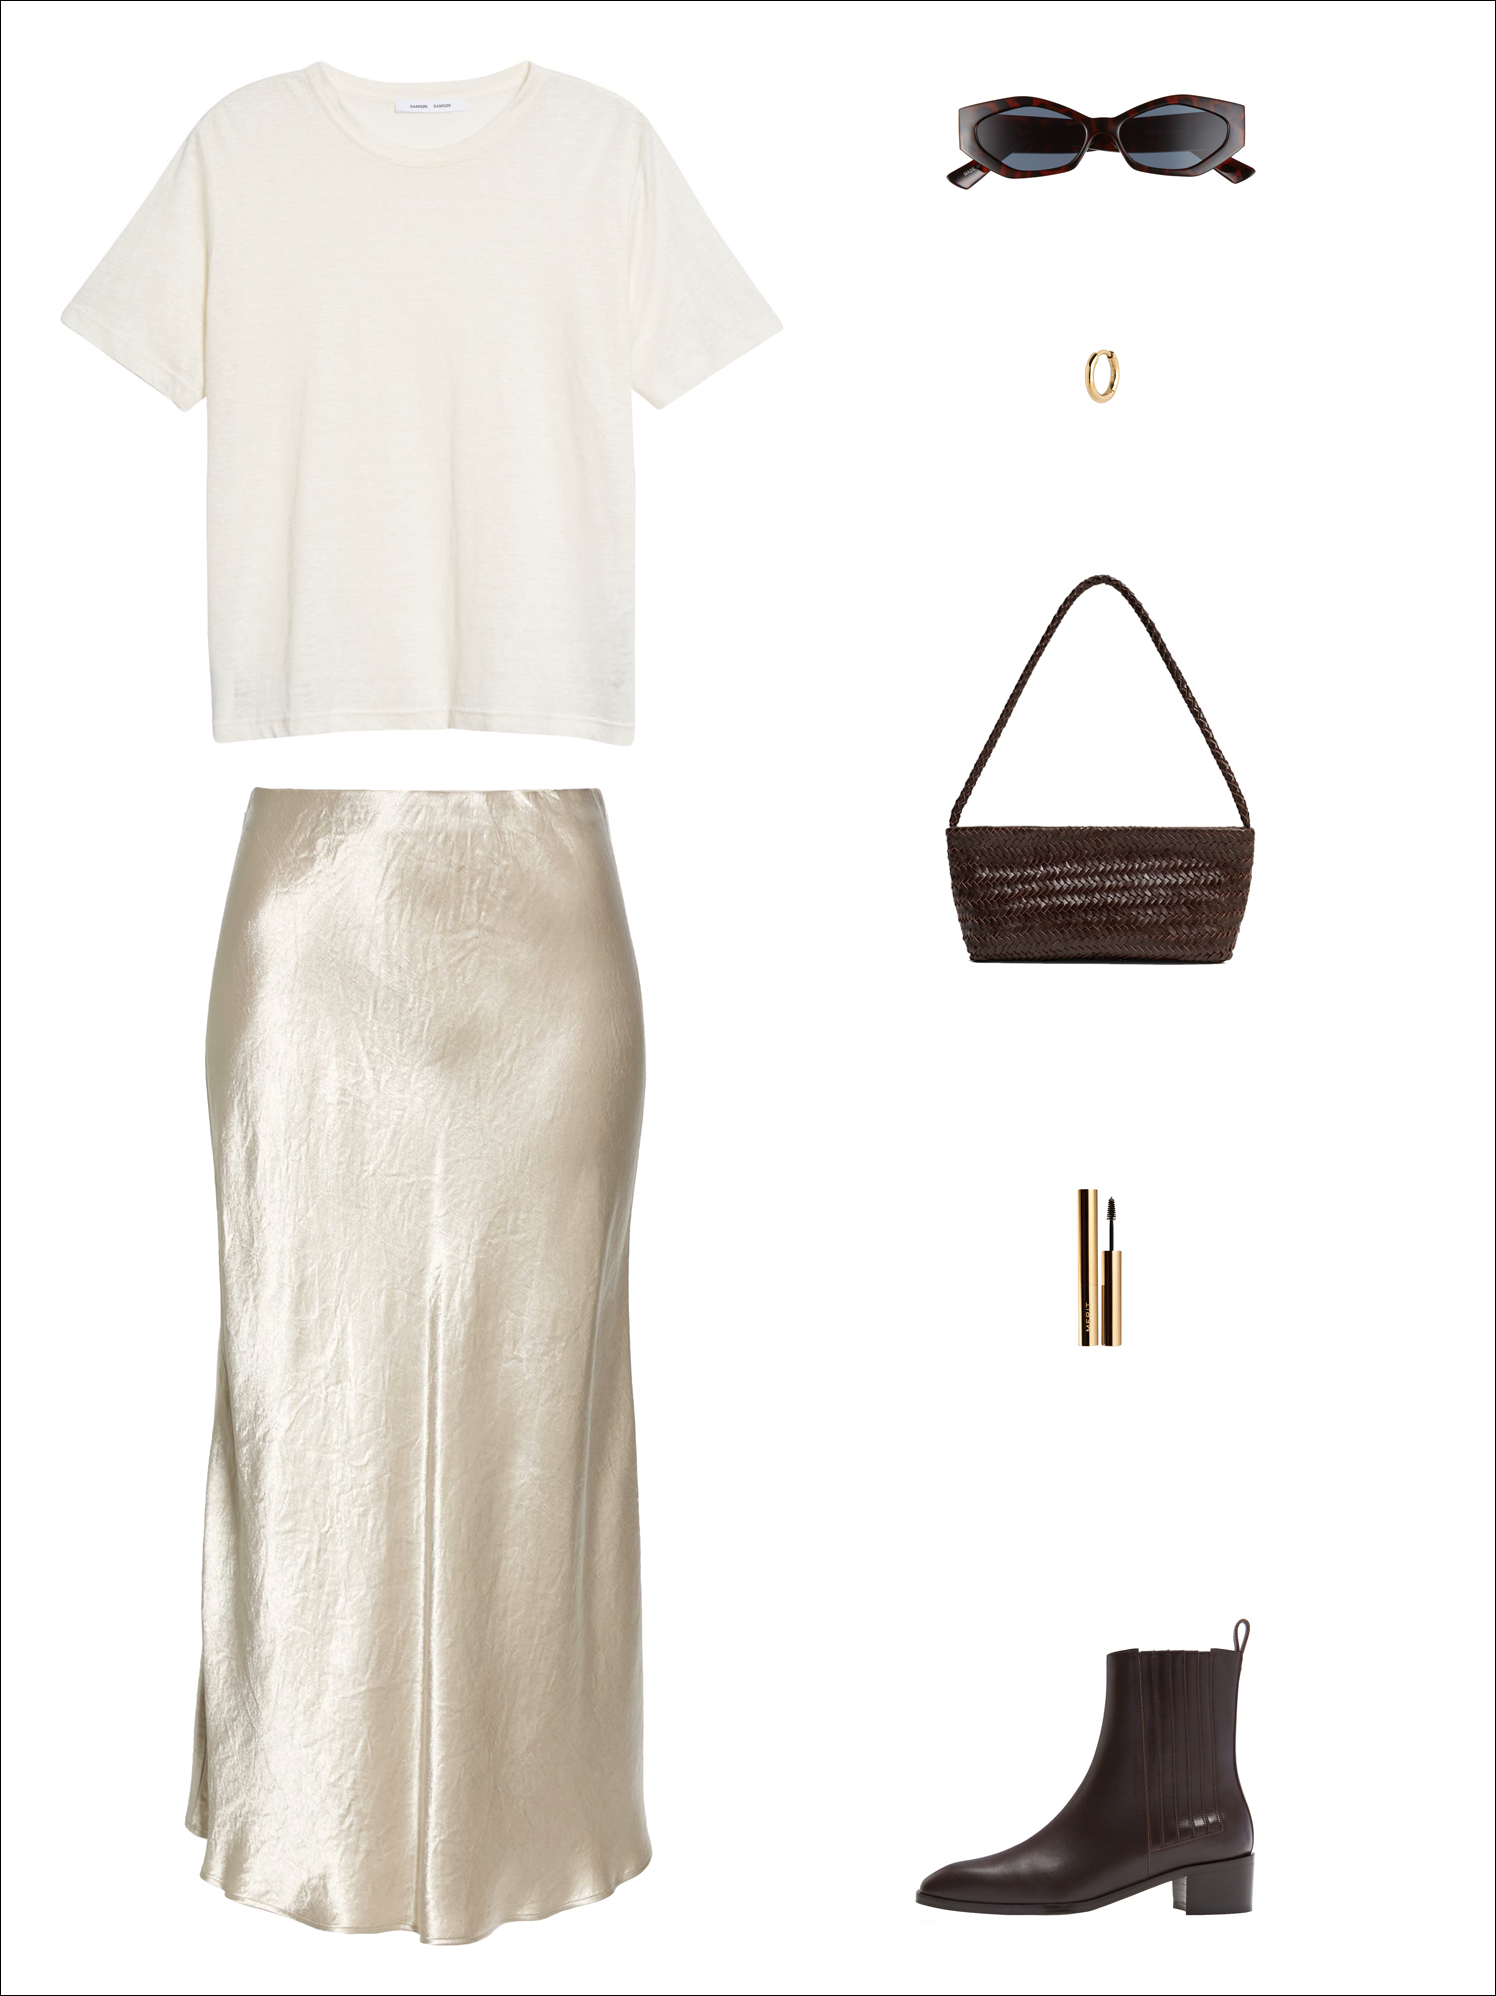 Transitional spring outfit idea with a white linen t-shirt, standout sunglasses, a cool hoop earring, braided bag, satin midi skirt, and brown Chelsea ankle boots